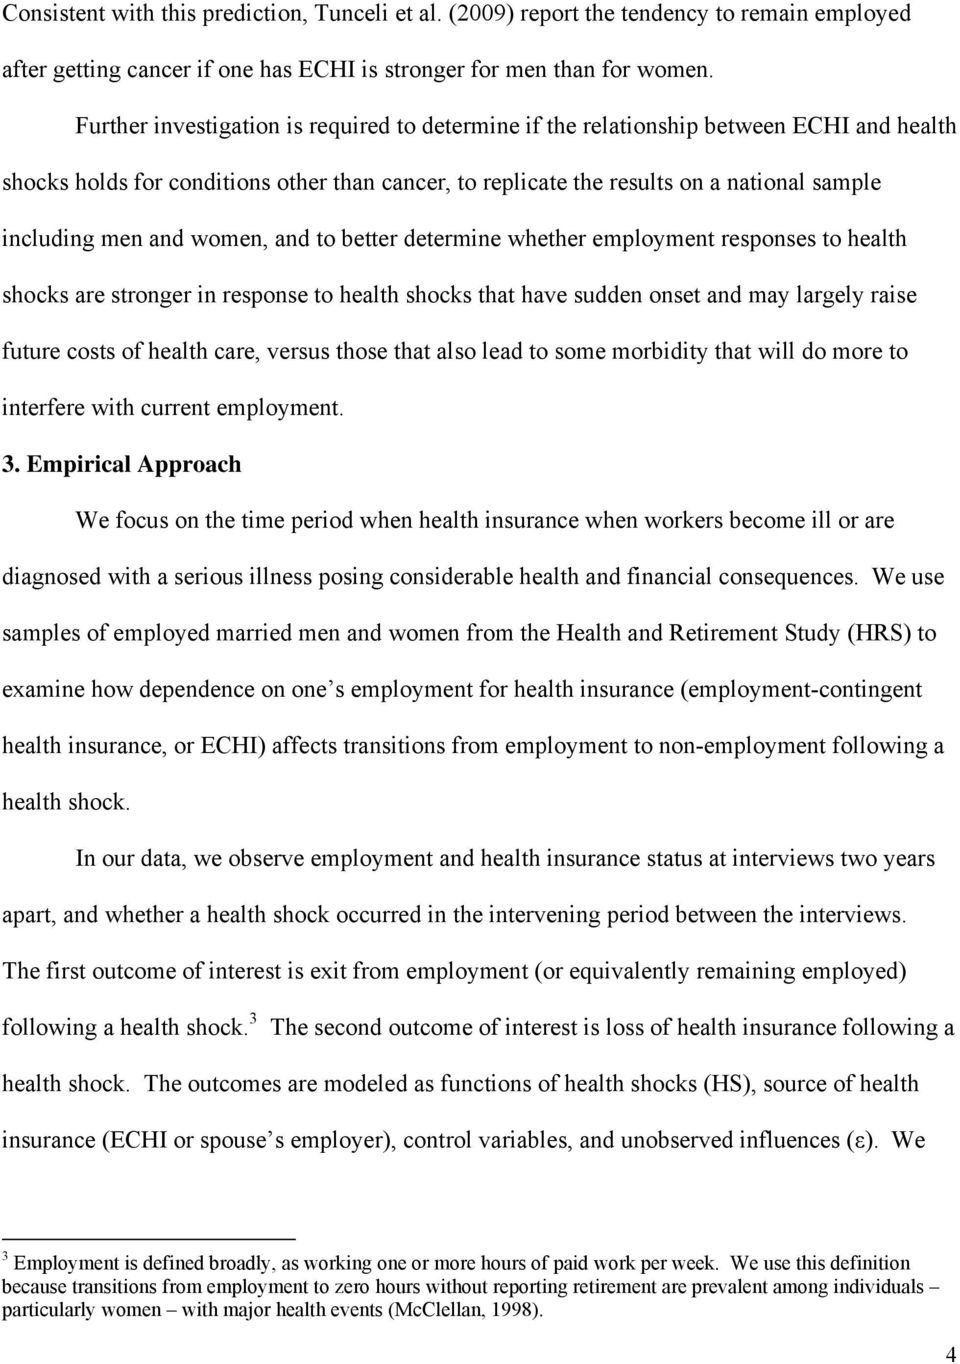 and women, and to better determine whether employment responses to health shocks are stronger in response to health shocks that have sudden onset and may largely raise future costs of health care,